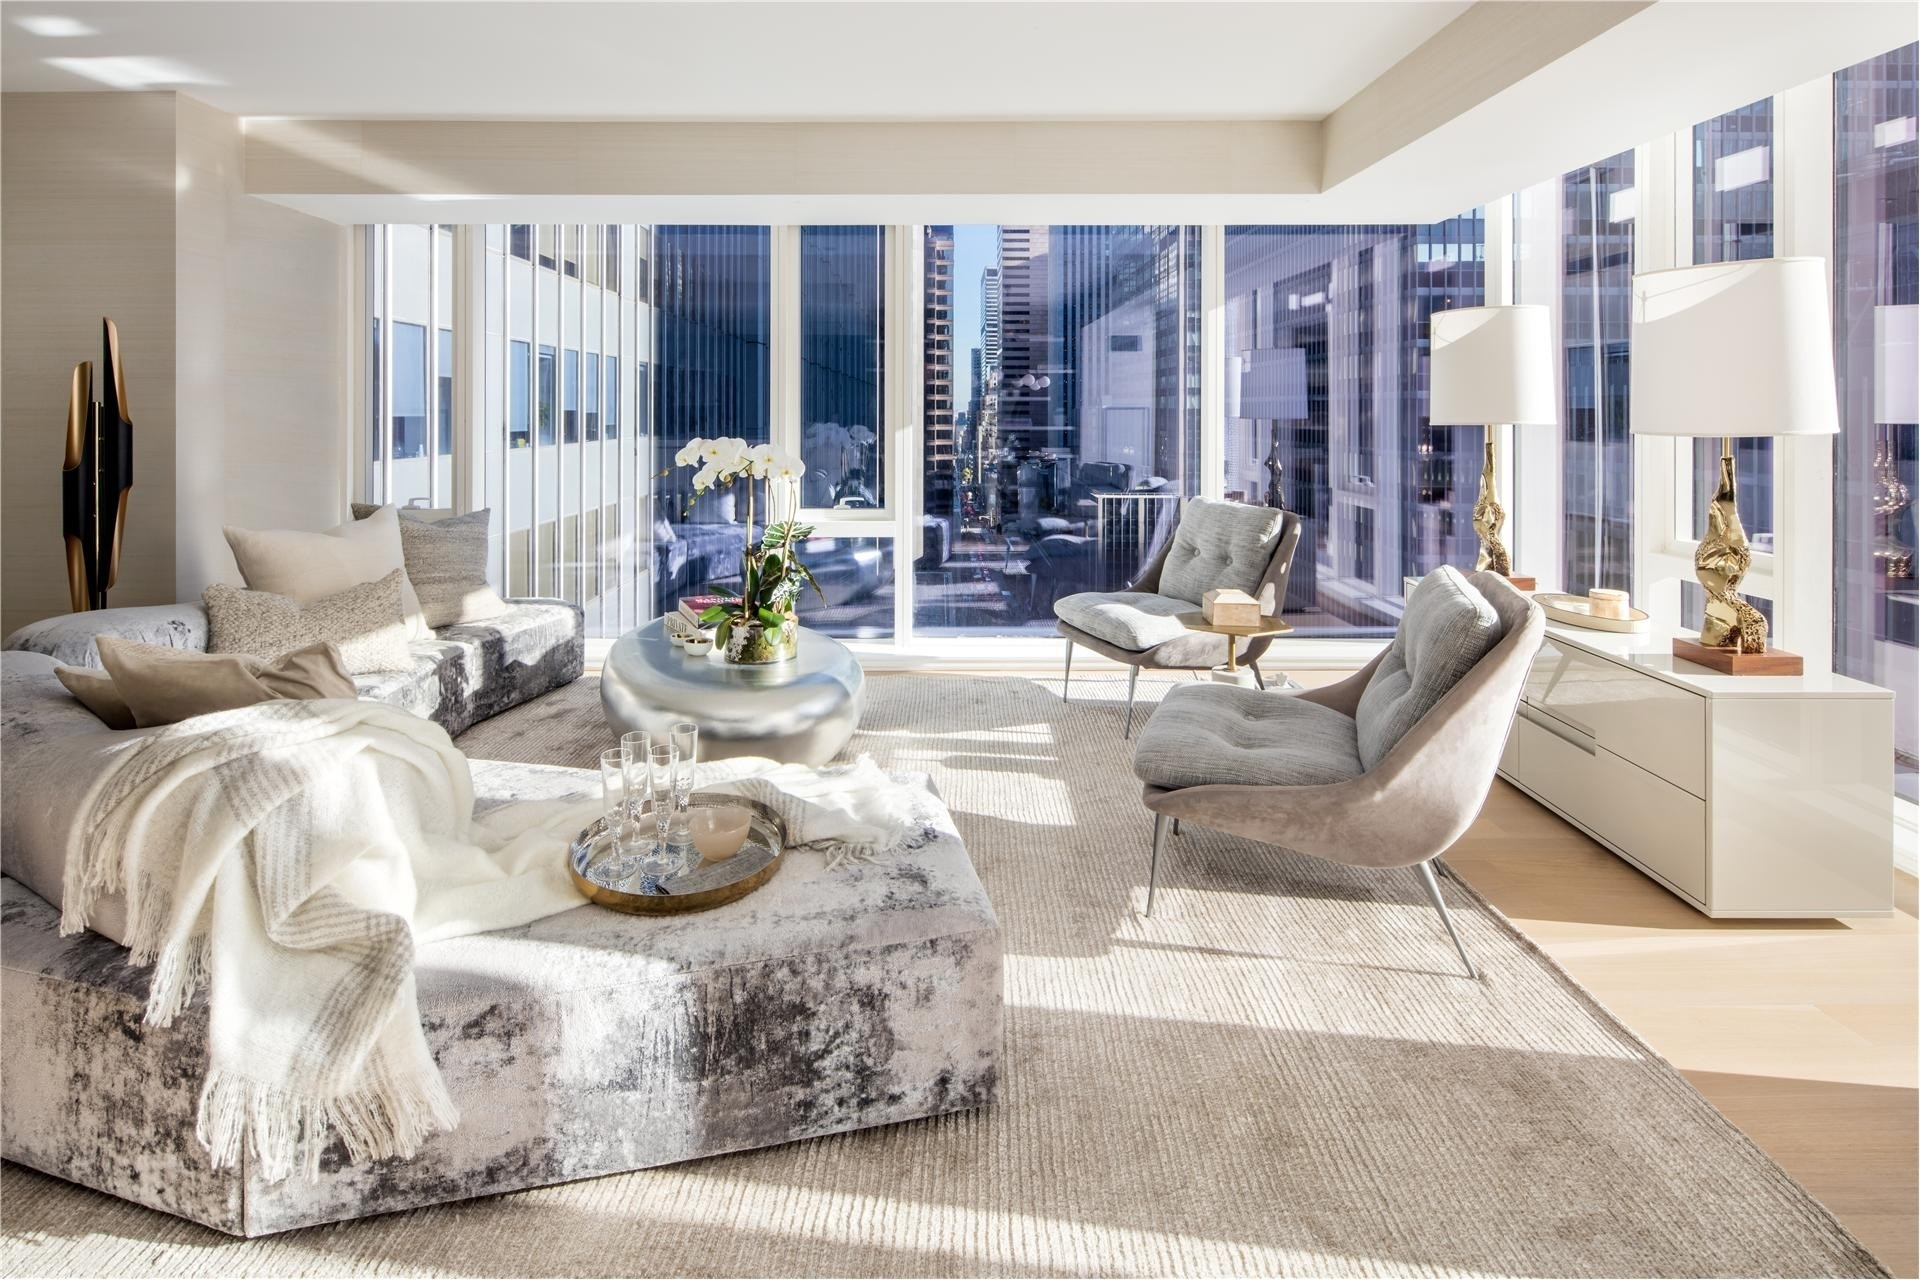 Condominium at 135 West 52nd St, 20C Theater District - Times Square, New York